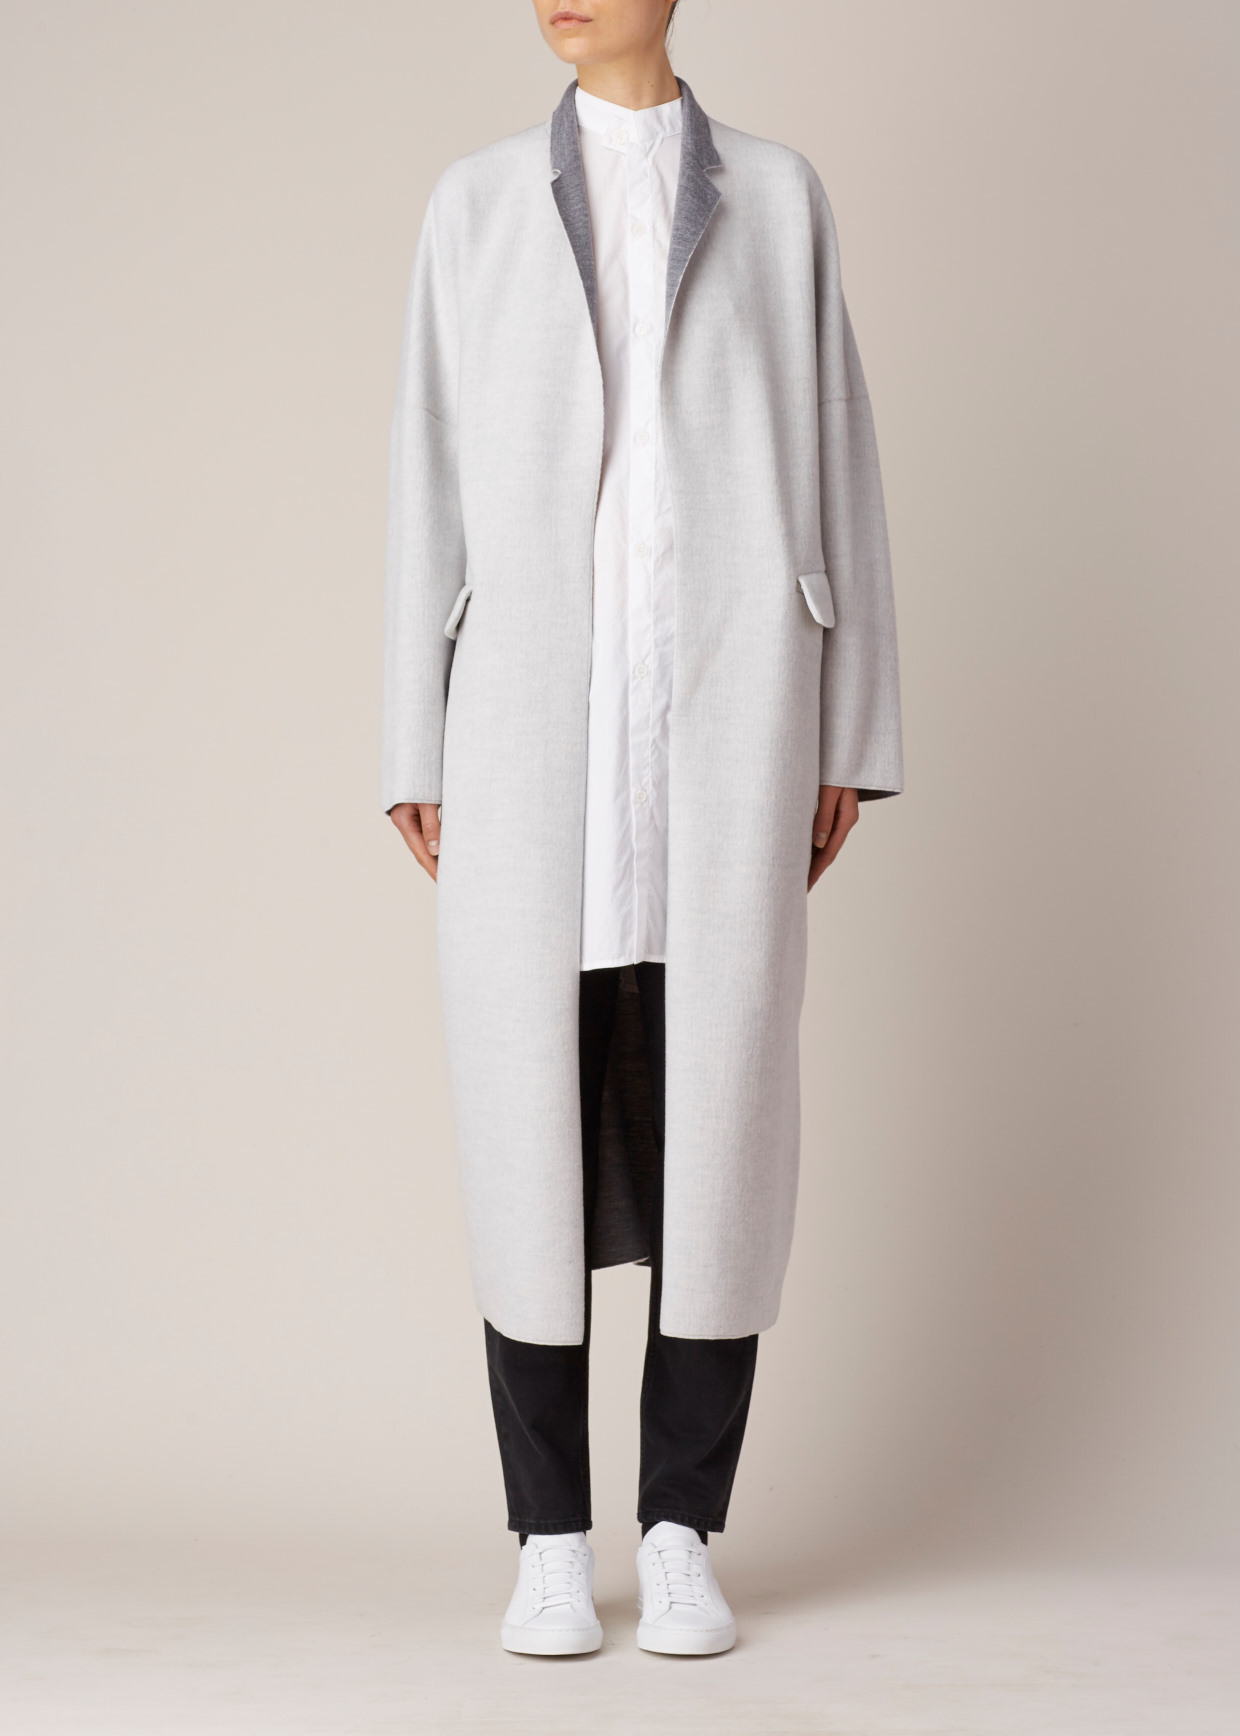 Y's yohji yamamoto Light Grey Classic Car Coat in Gray | Lyst